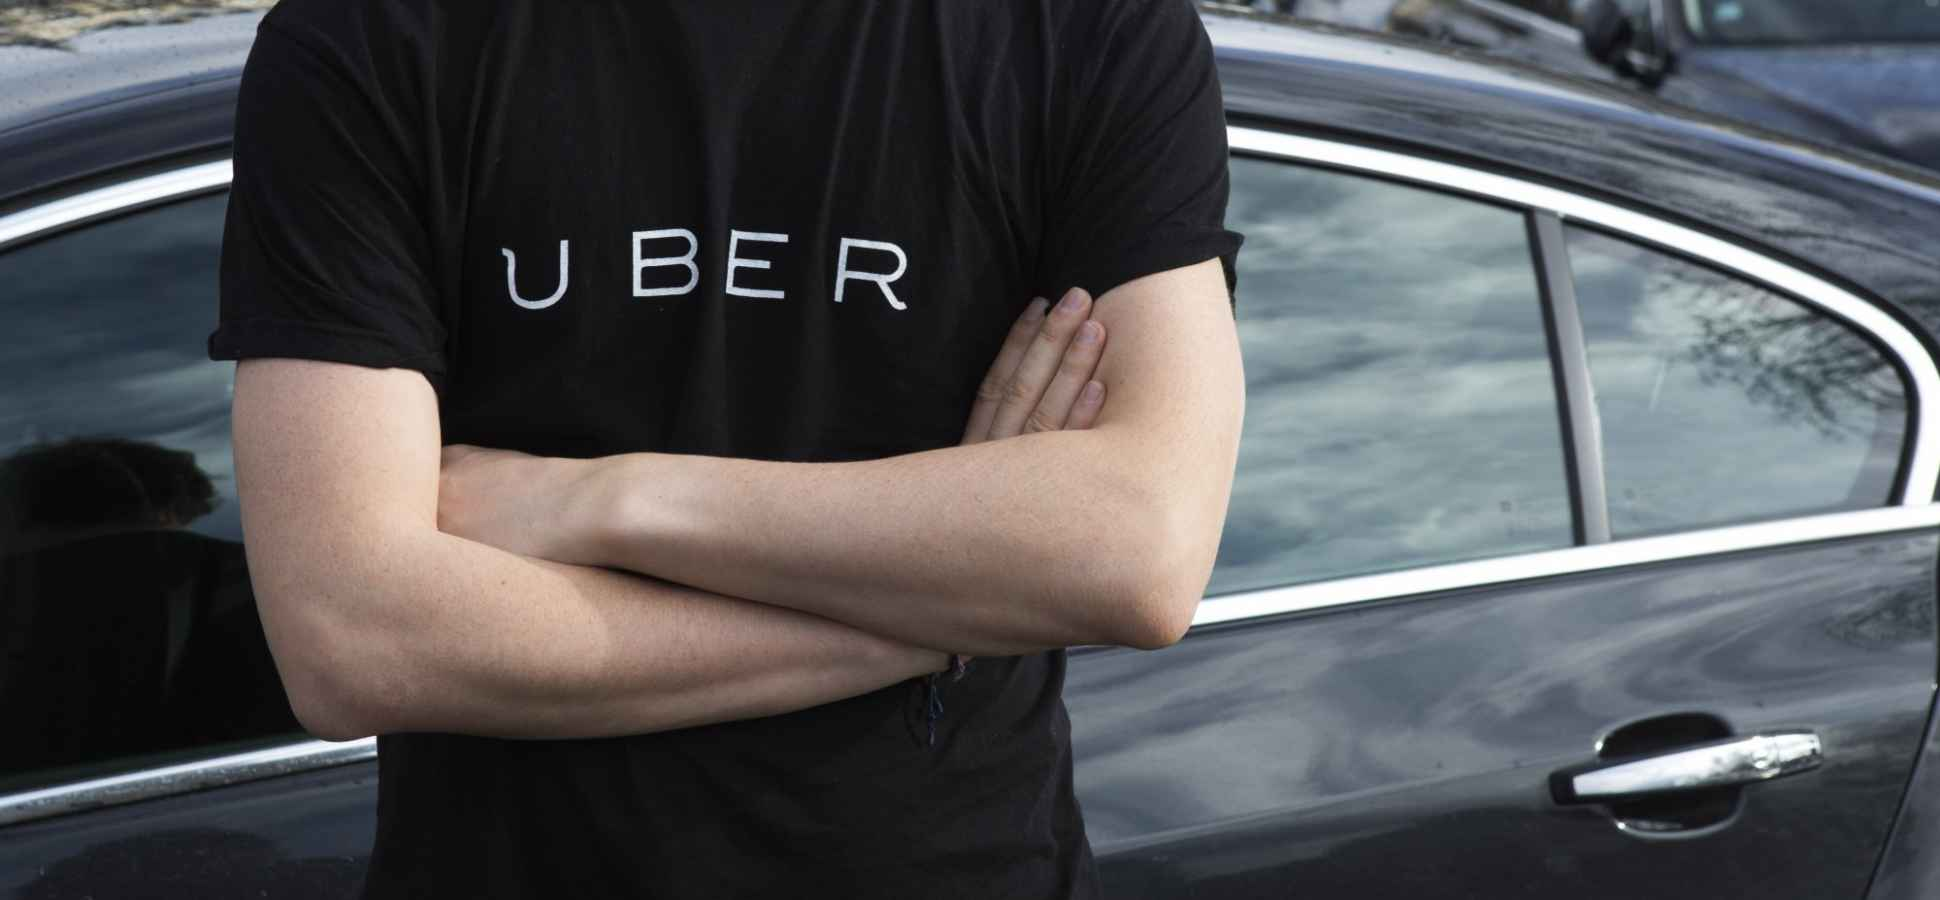 Uber Just Released Their First Pitch Deck From 2008, and It Shows What You'll Need to Build a Billion-Dollar Startup